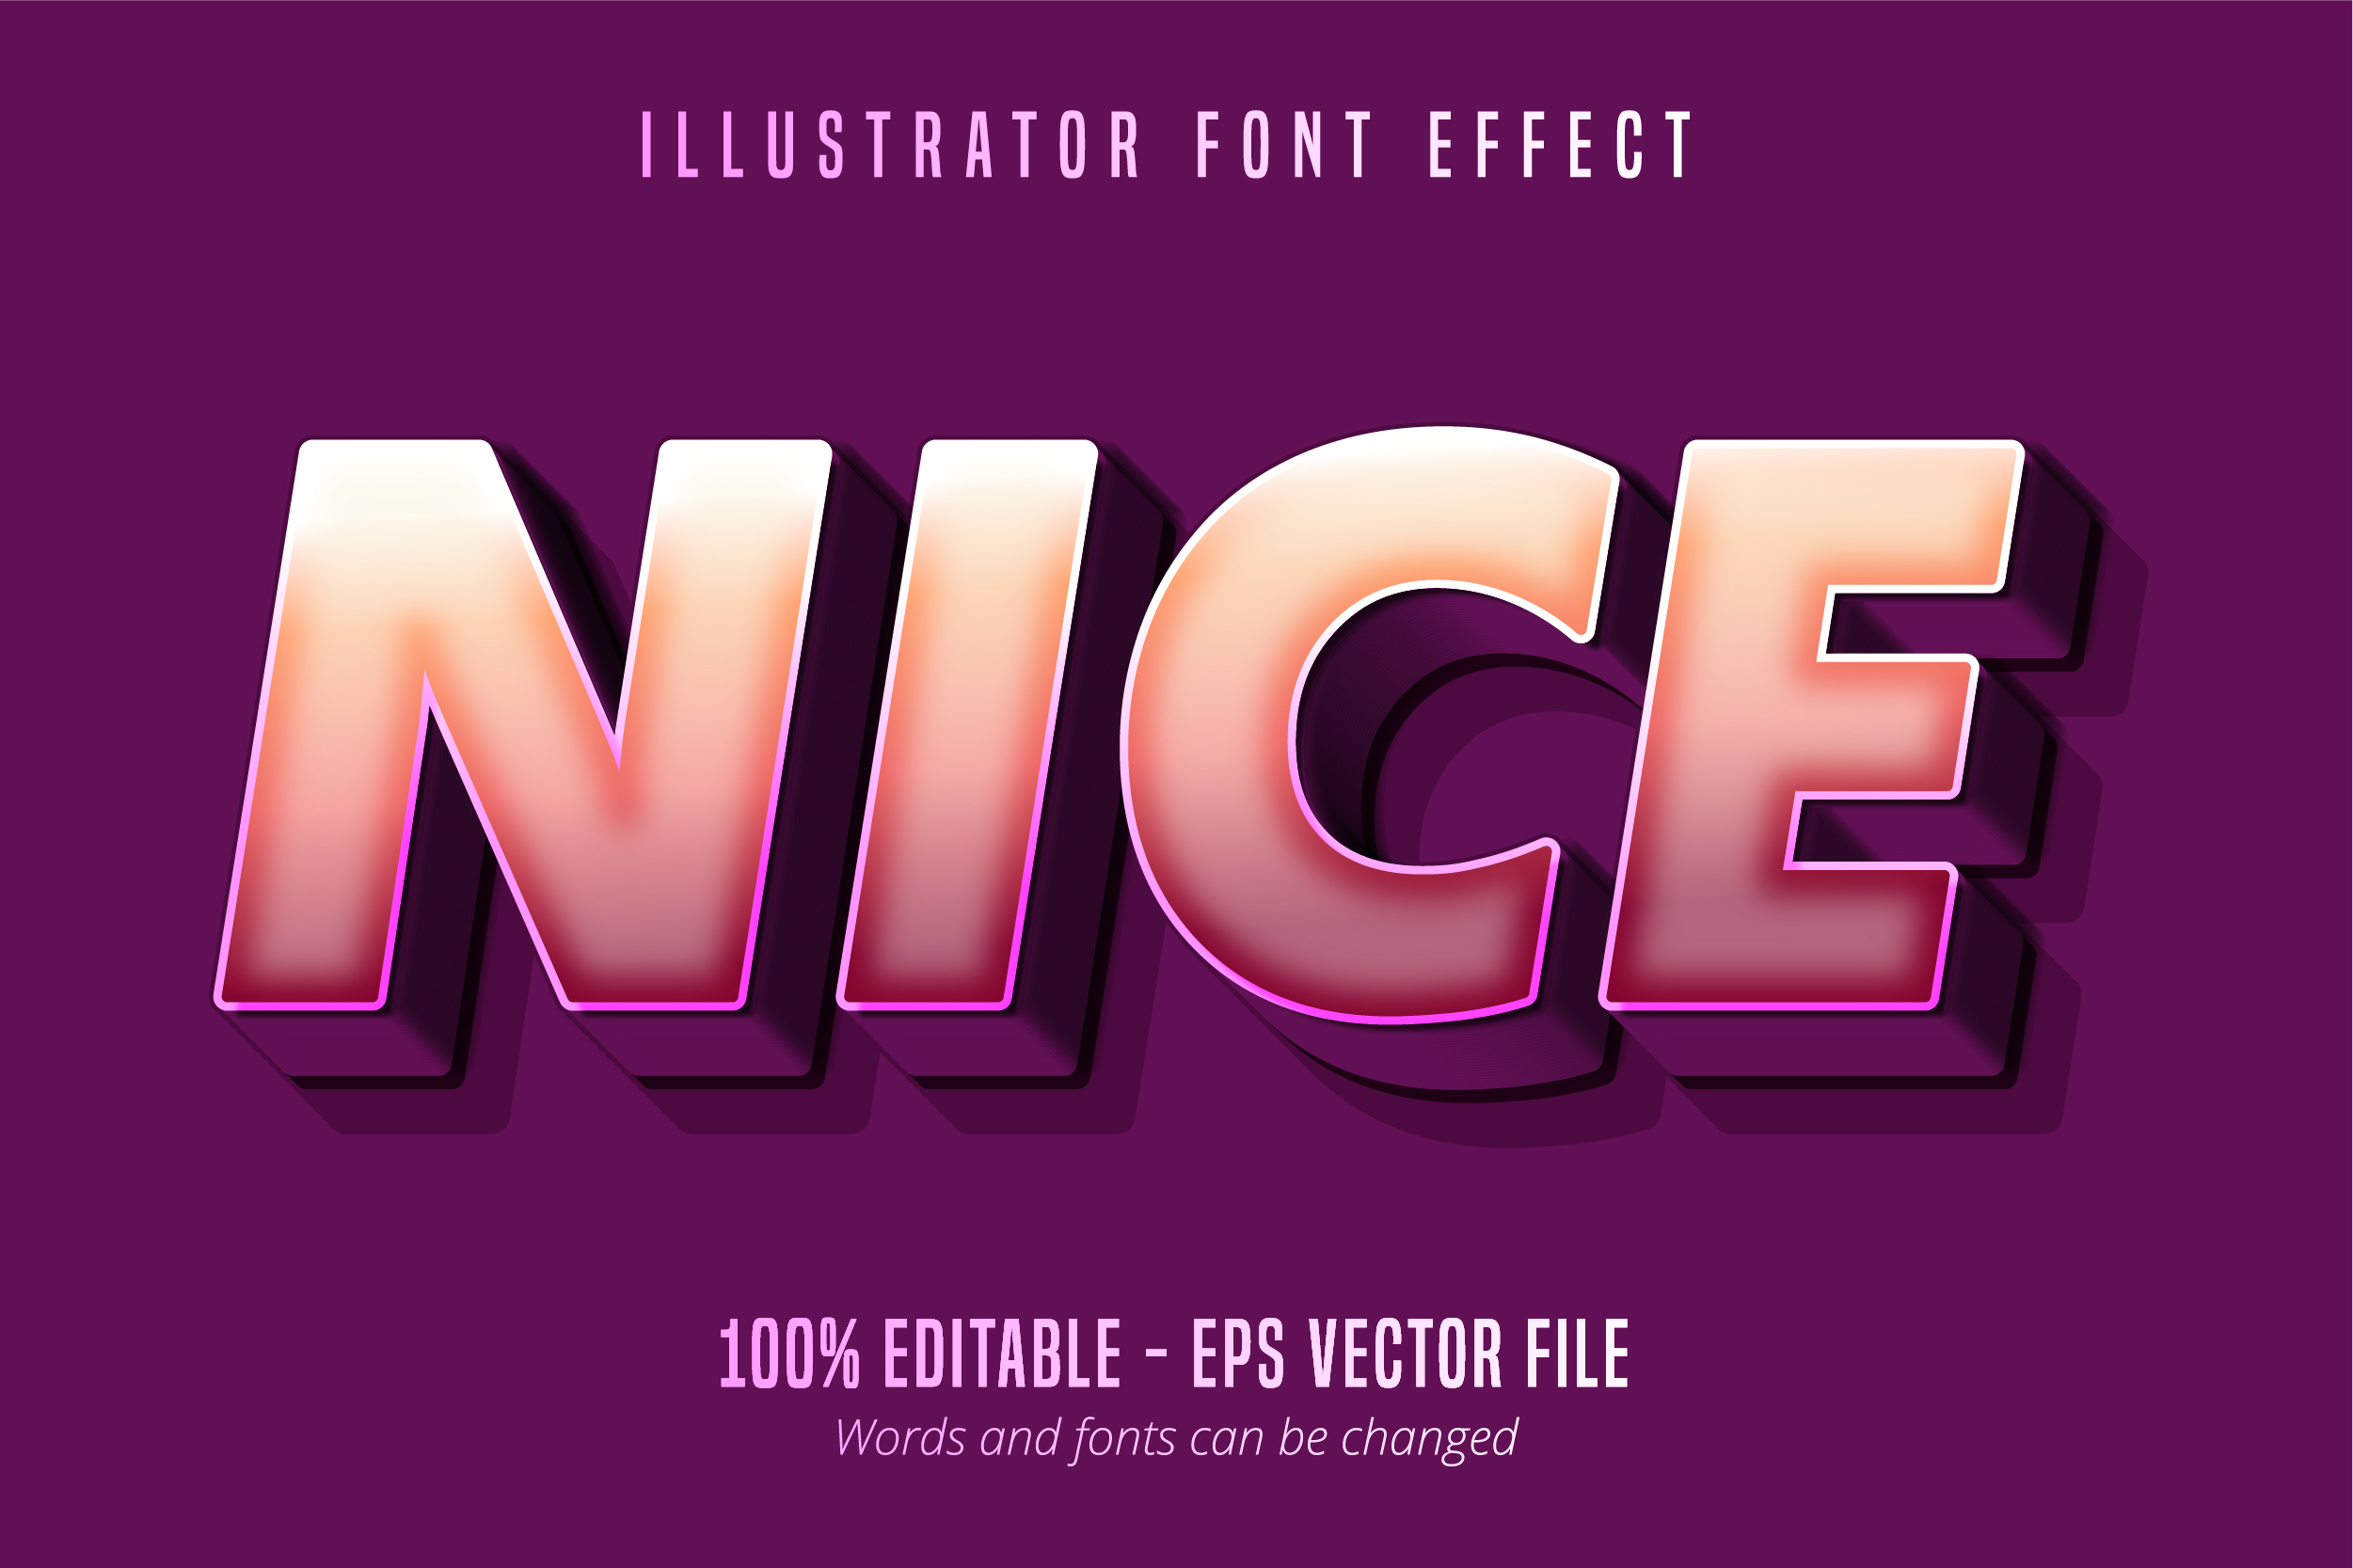 Download Free Strong Bold 3d Cartoon Style Font Effect Graphic By Mustafa for Cricut Explore, Silhouette and other cutting machines.